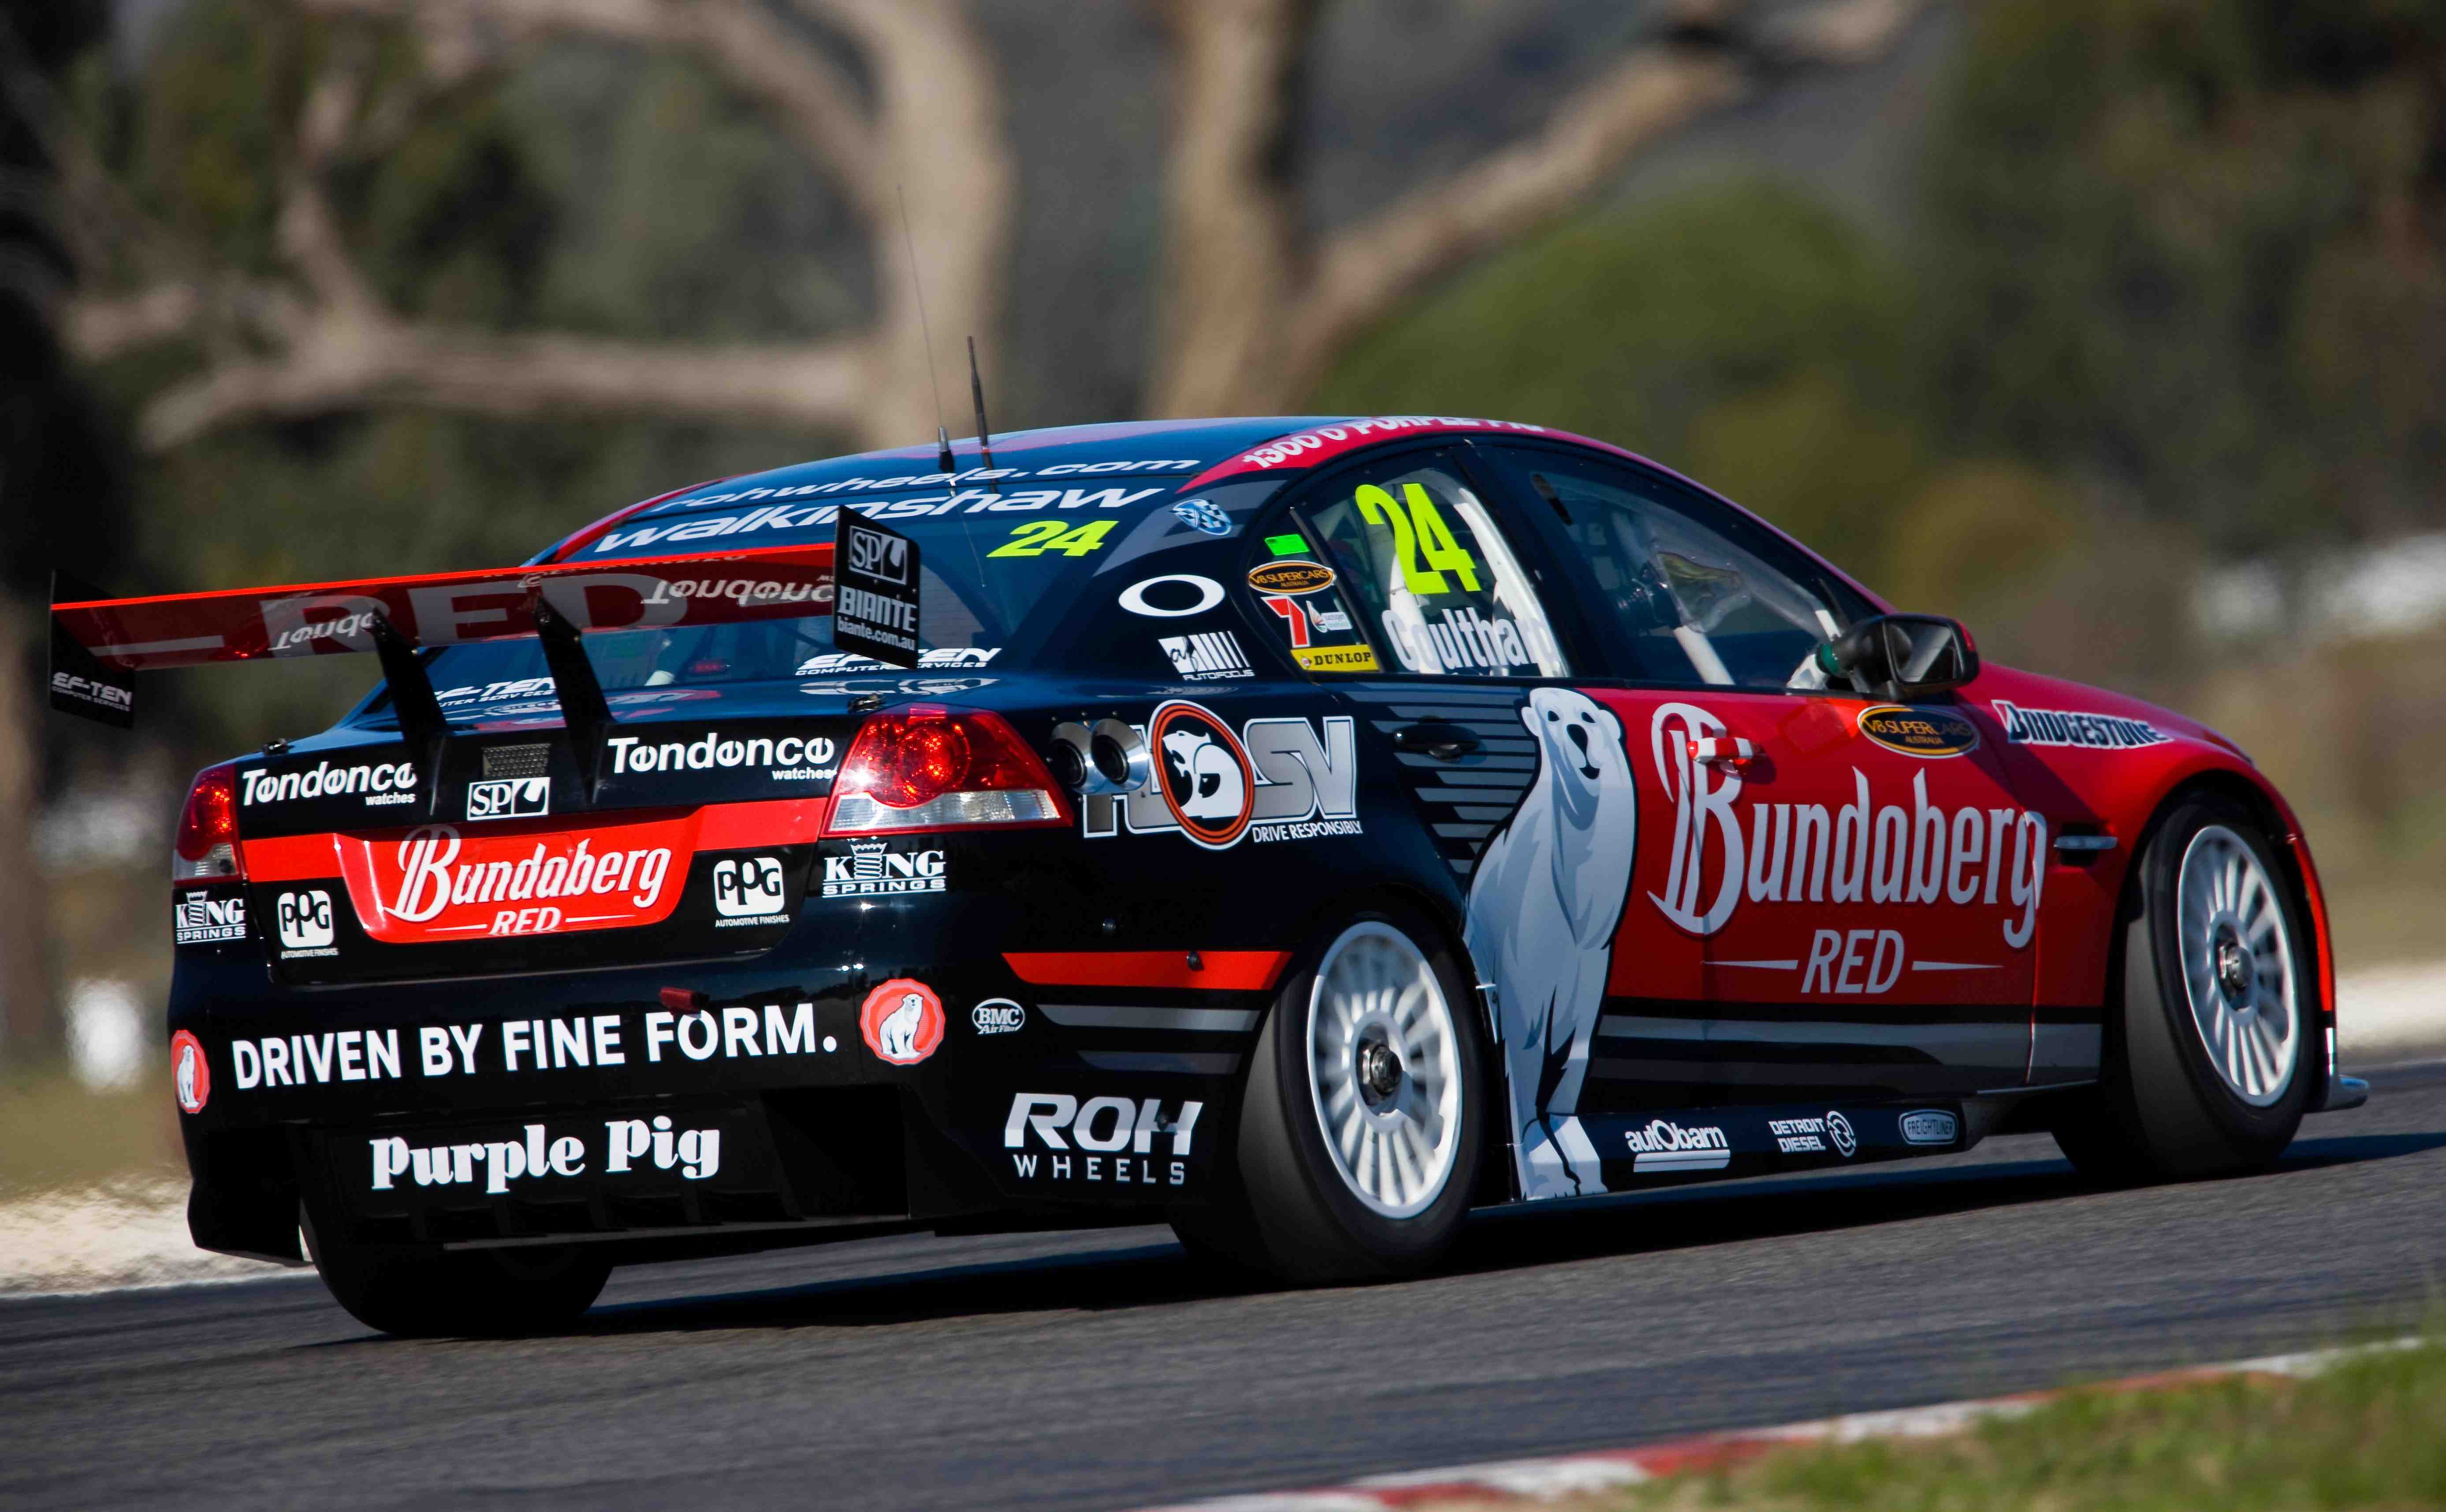 New car not final solution for Coulthard